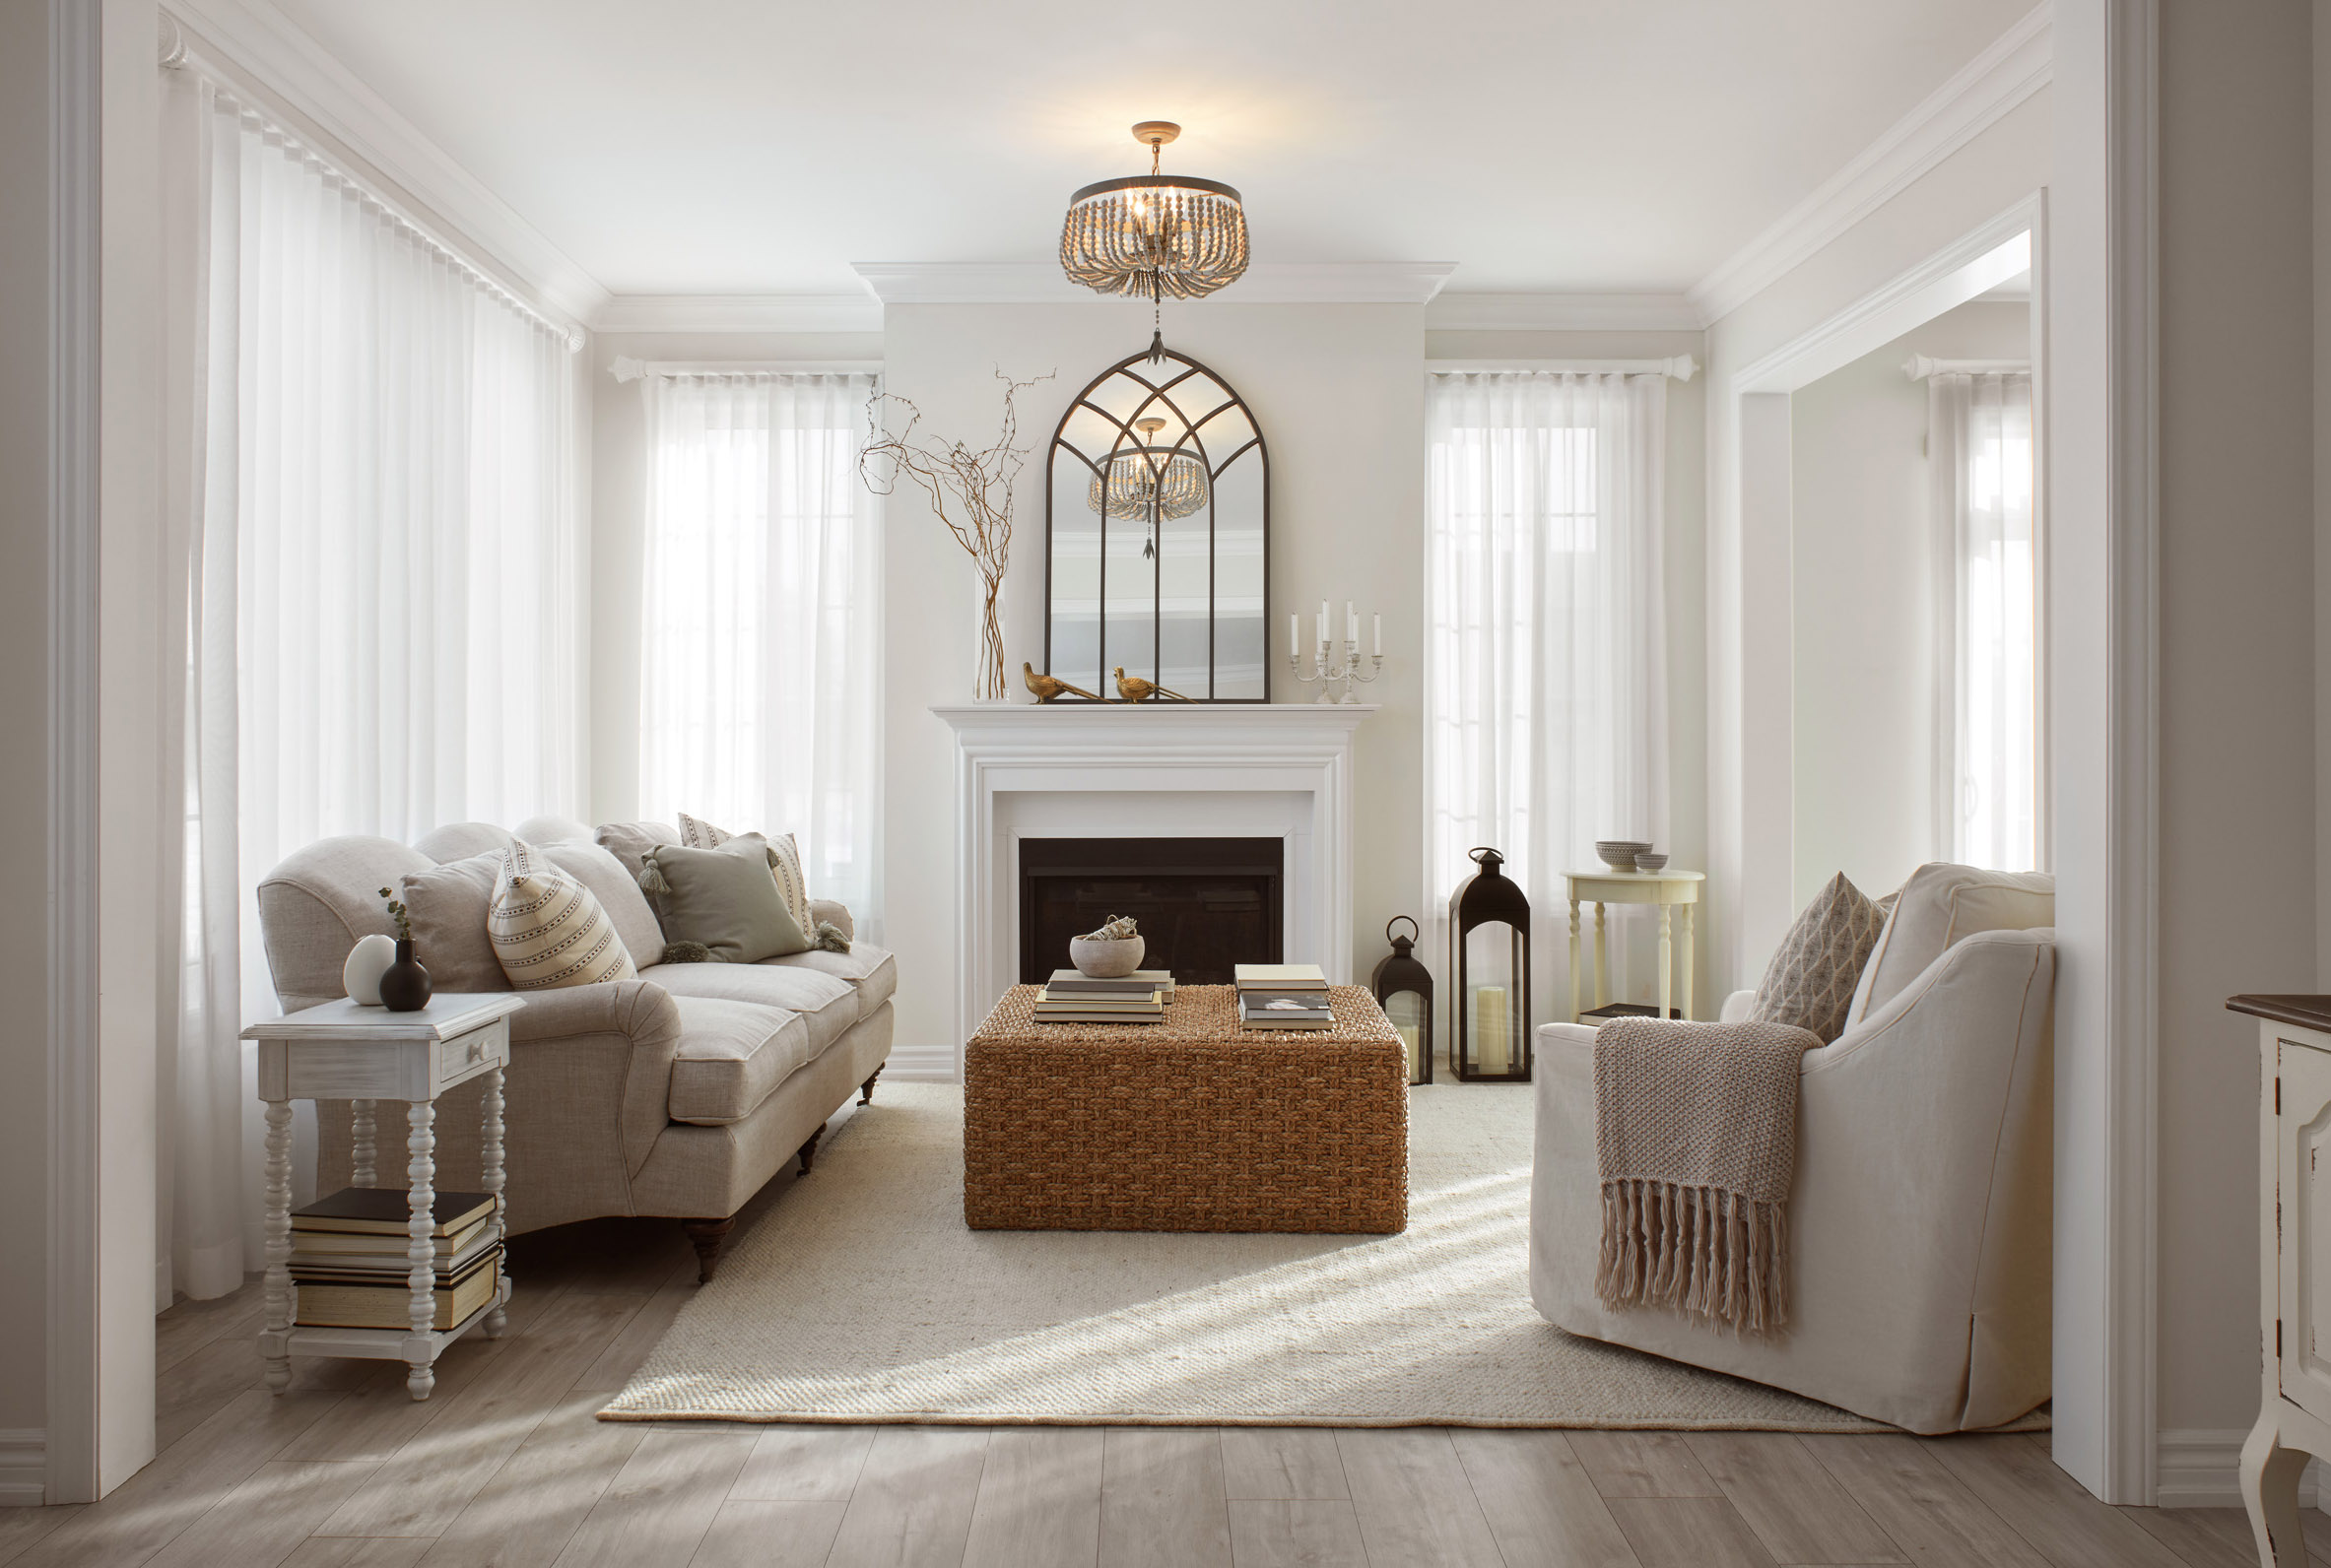 Shabby Chic living room with white walls and furniture, light wood floors, and large windows that let in sunlight.